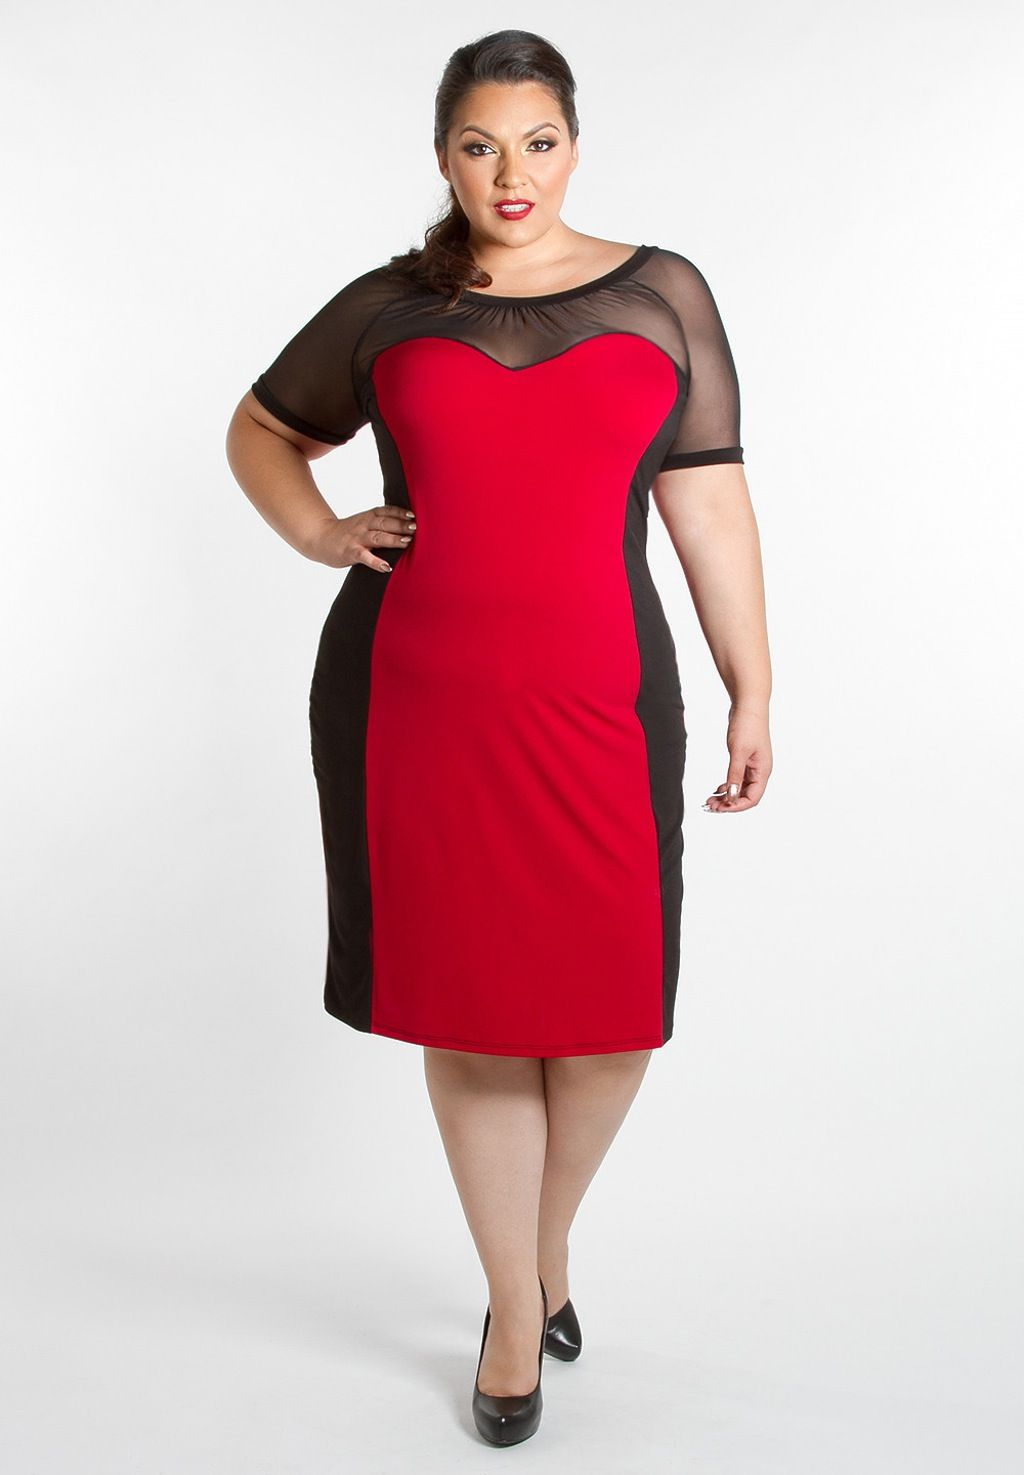 2dab39078e Red And Black Floral Dress Plus Size - Gomes Weine AG